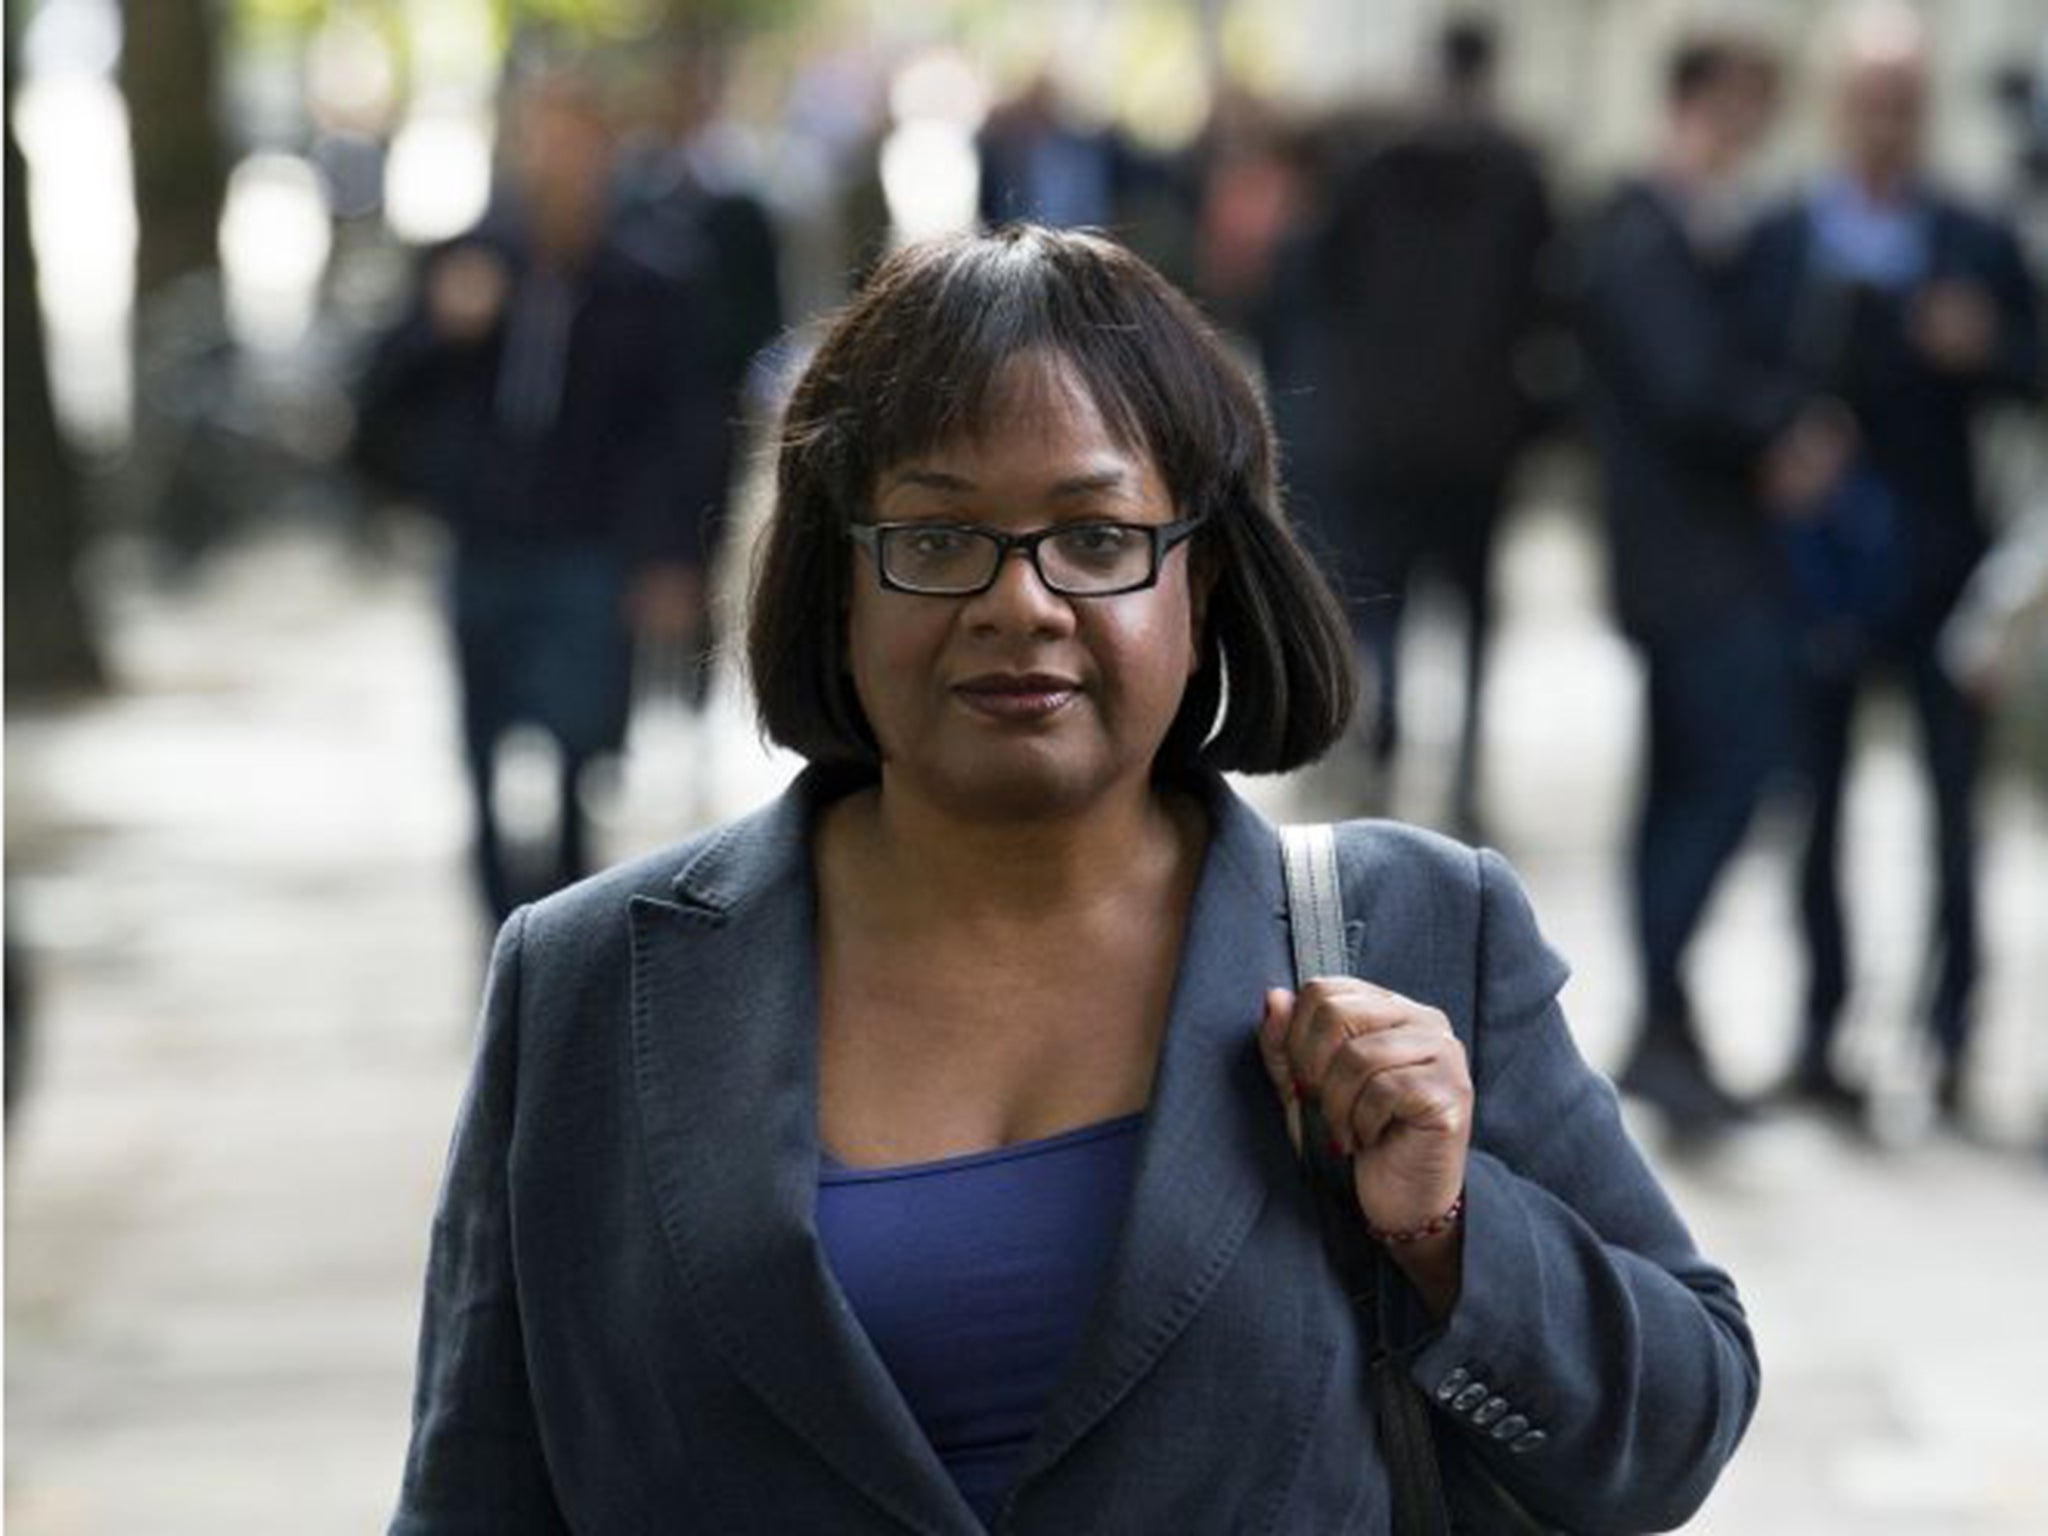 Thumbnail for Snooper's Charter is 'unlawful' and must be overhauled, Labour's Dianne Abbott says